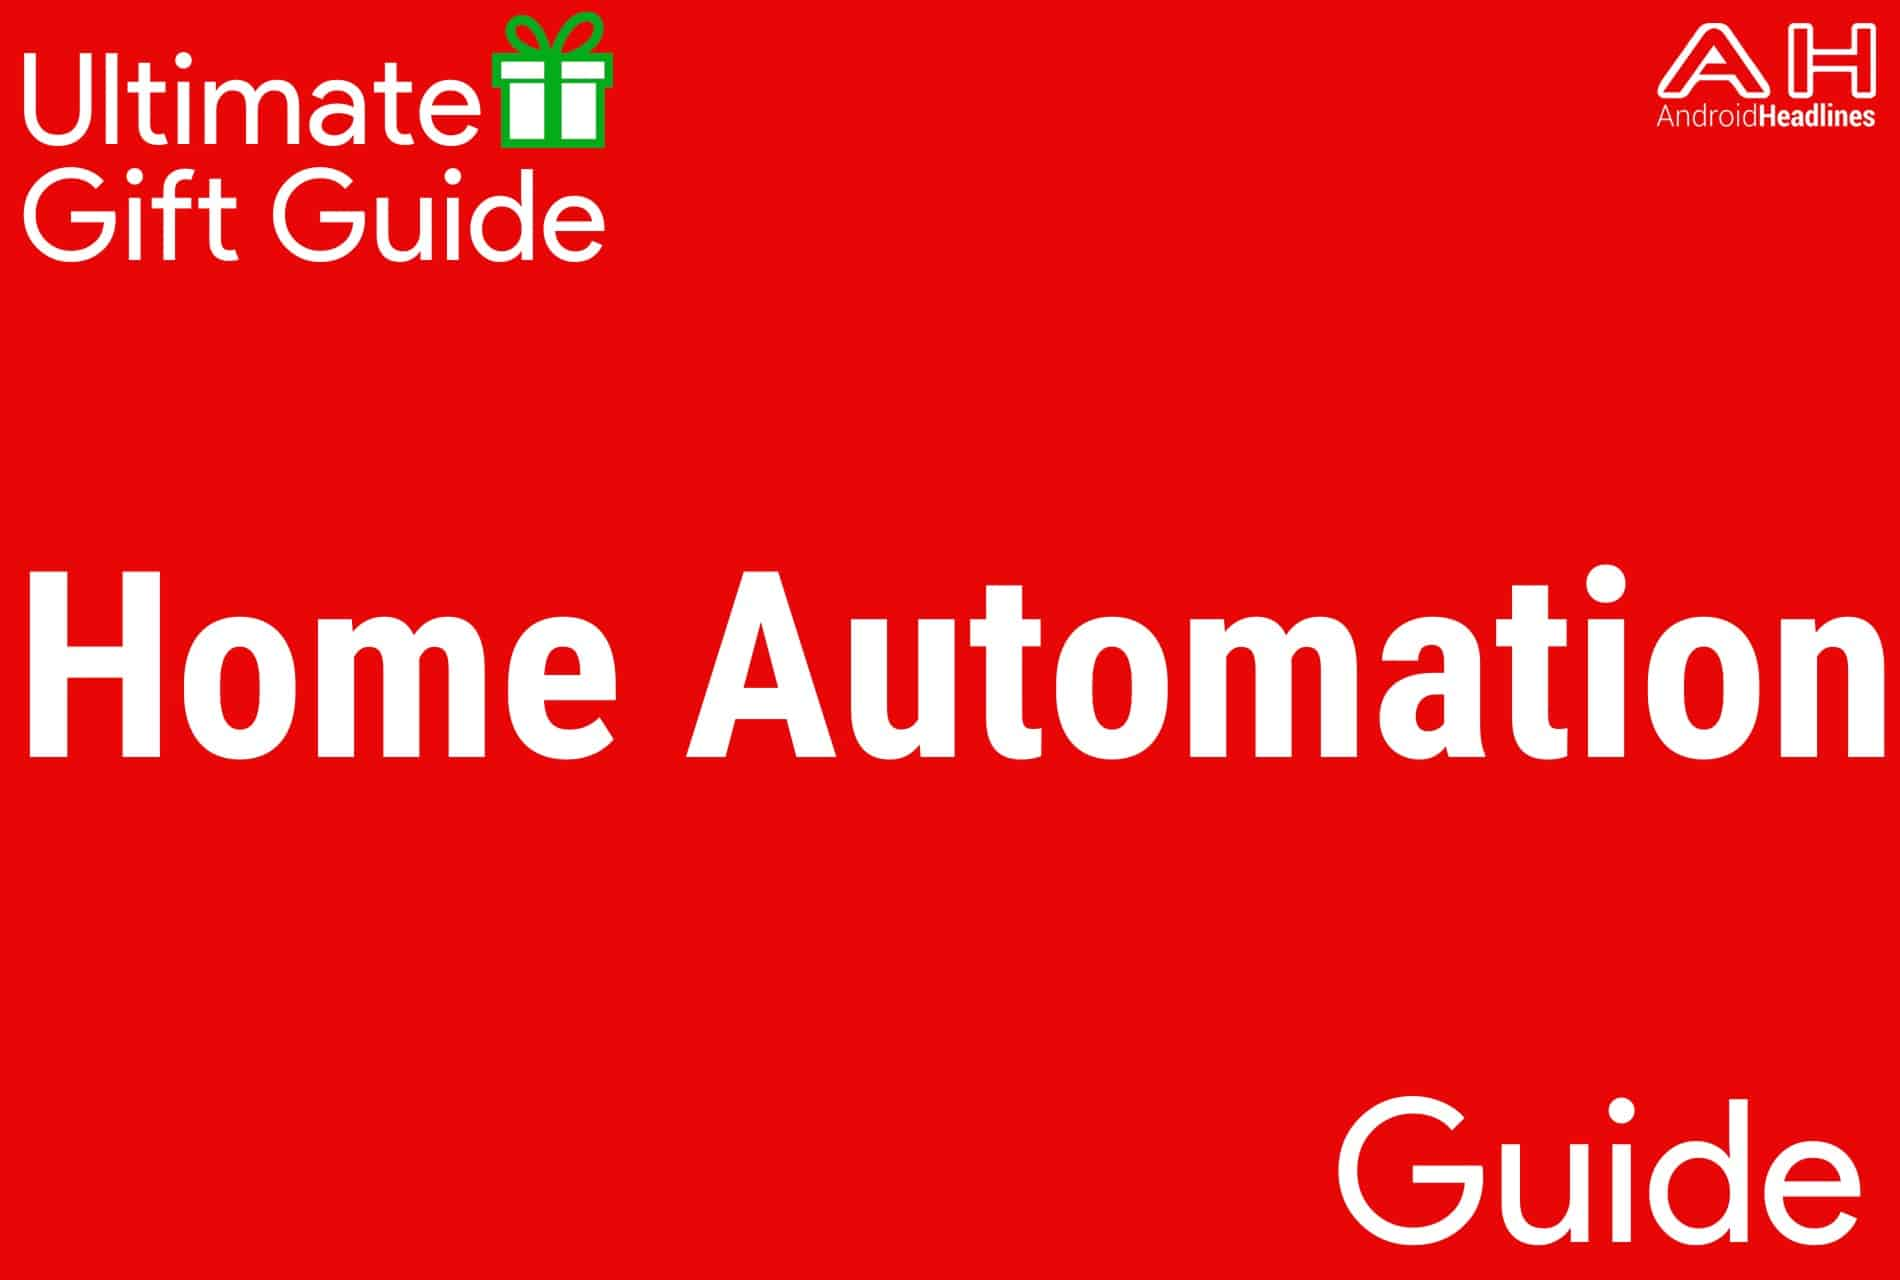 Home Automation - Gift Guide 2015